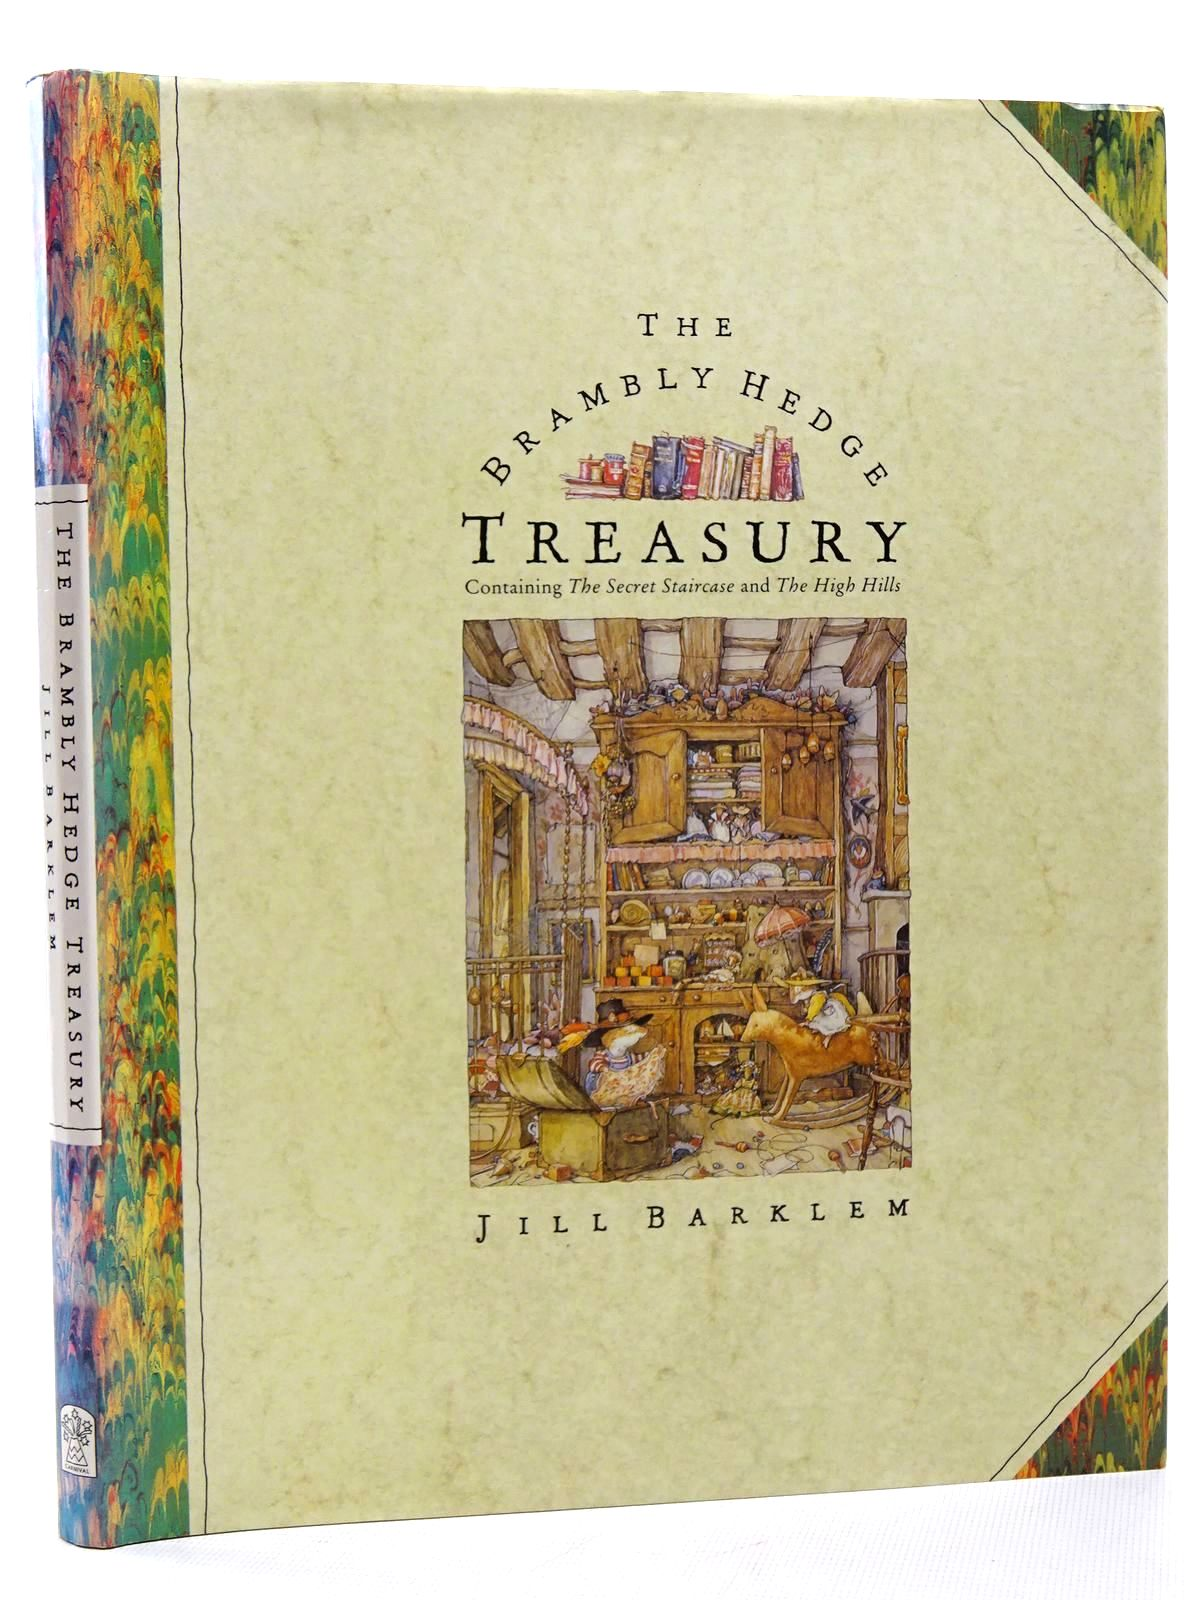 Photo of THE BRAMBLY HEDGE TREASURY written by Barklem, Jill illustrated by Barklem, Jill published by Carnival (STOCK CODE: 1317275)  for sale by Stella & Rose's Books